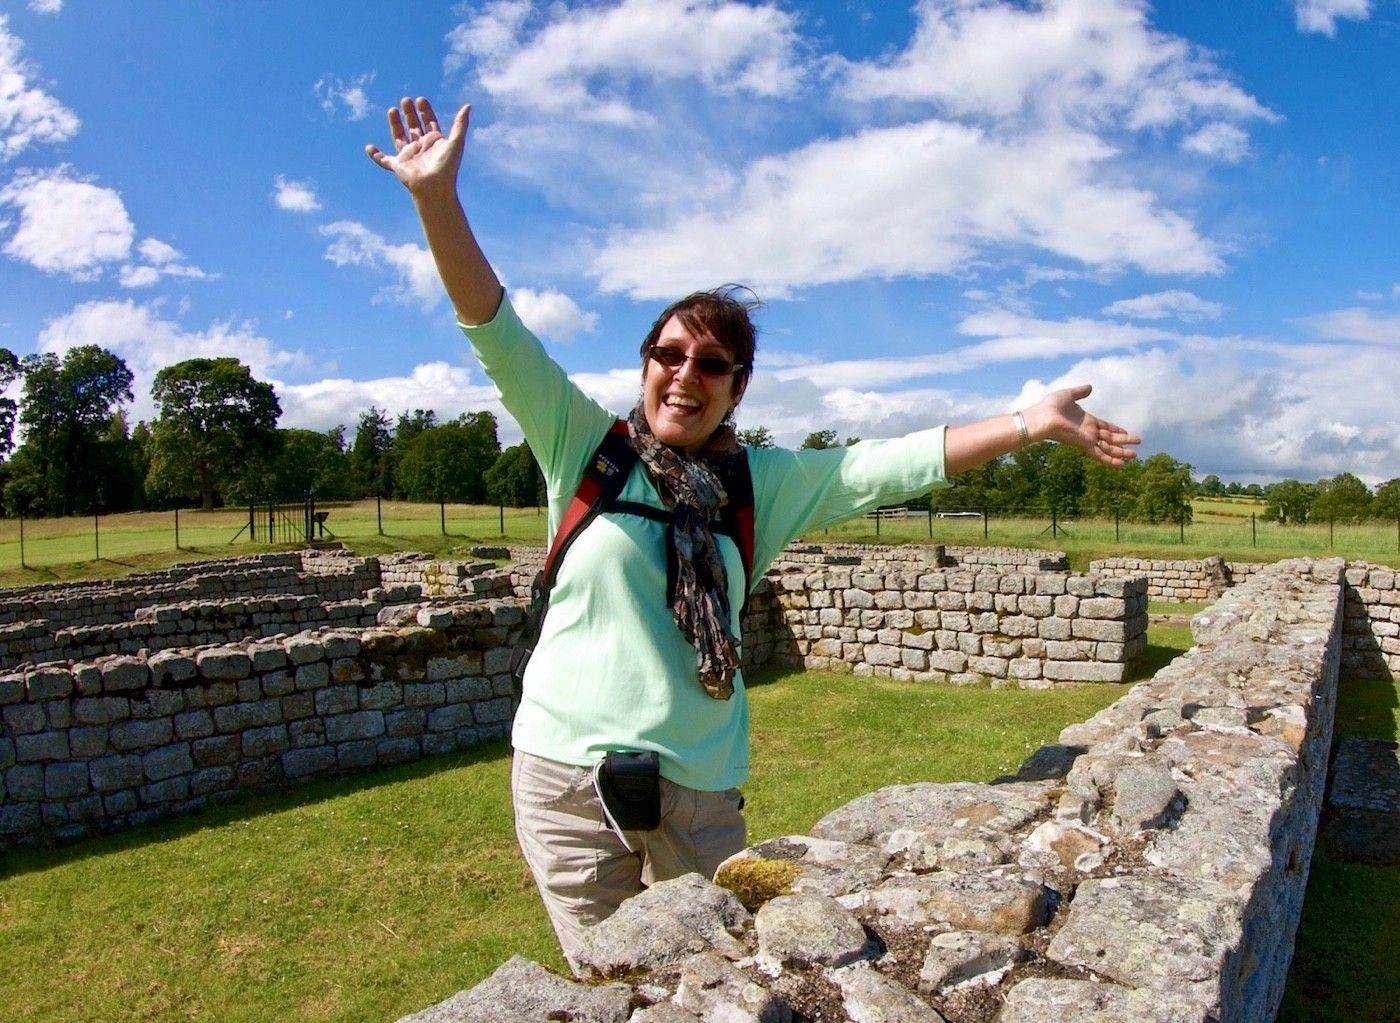 Susan looks happy to be in the ruins of a Roman barracks. How many Legionnaires slept here over the course of 400 years?